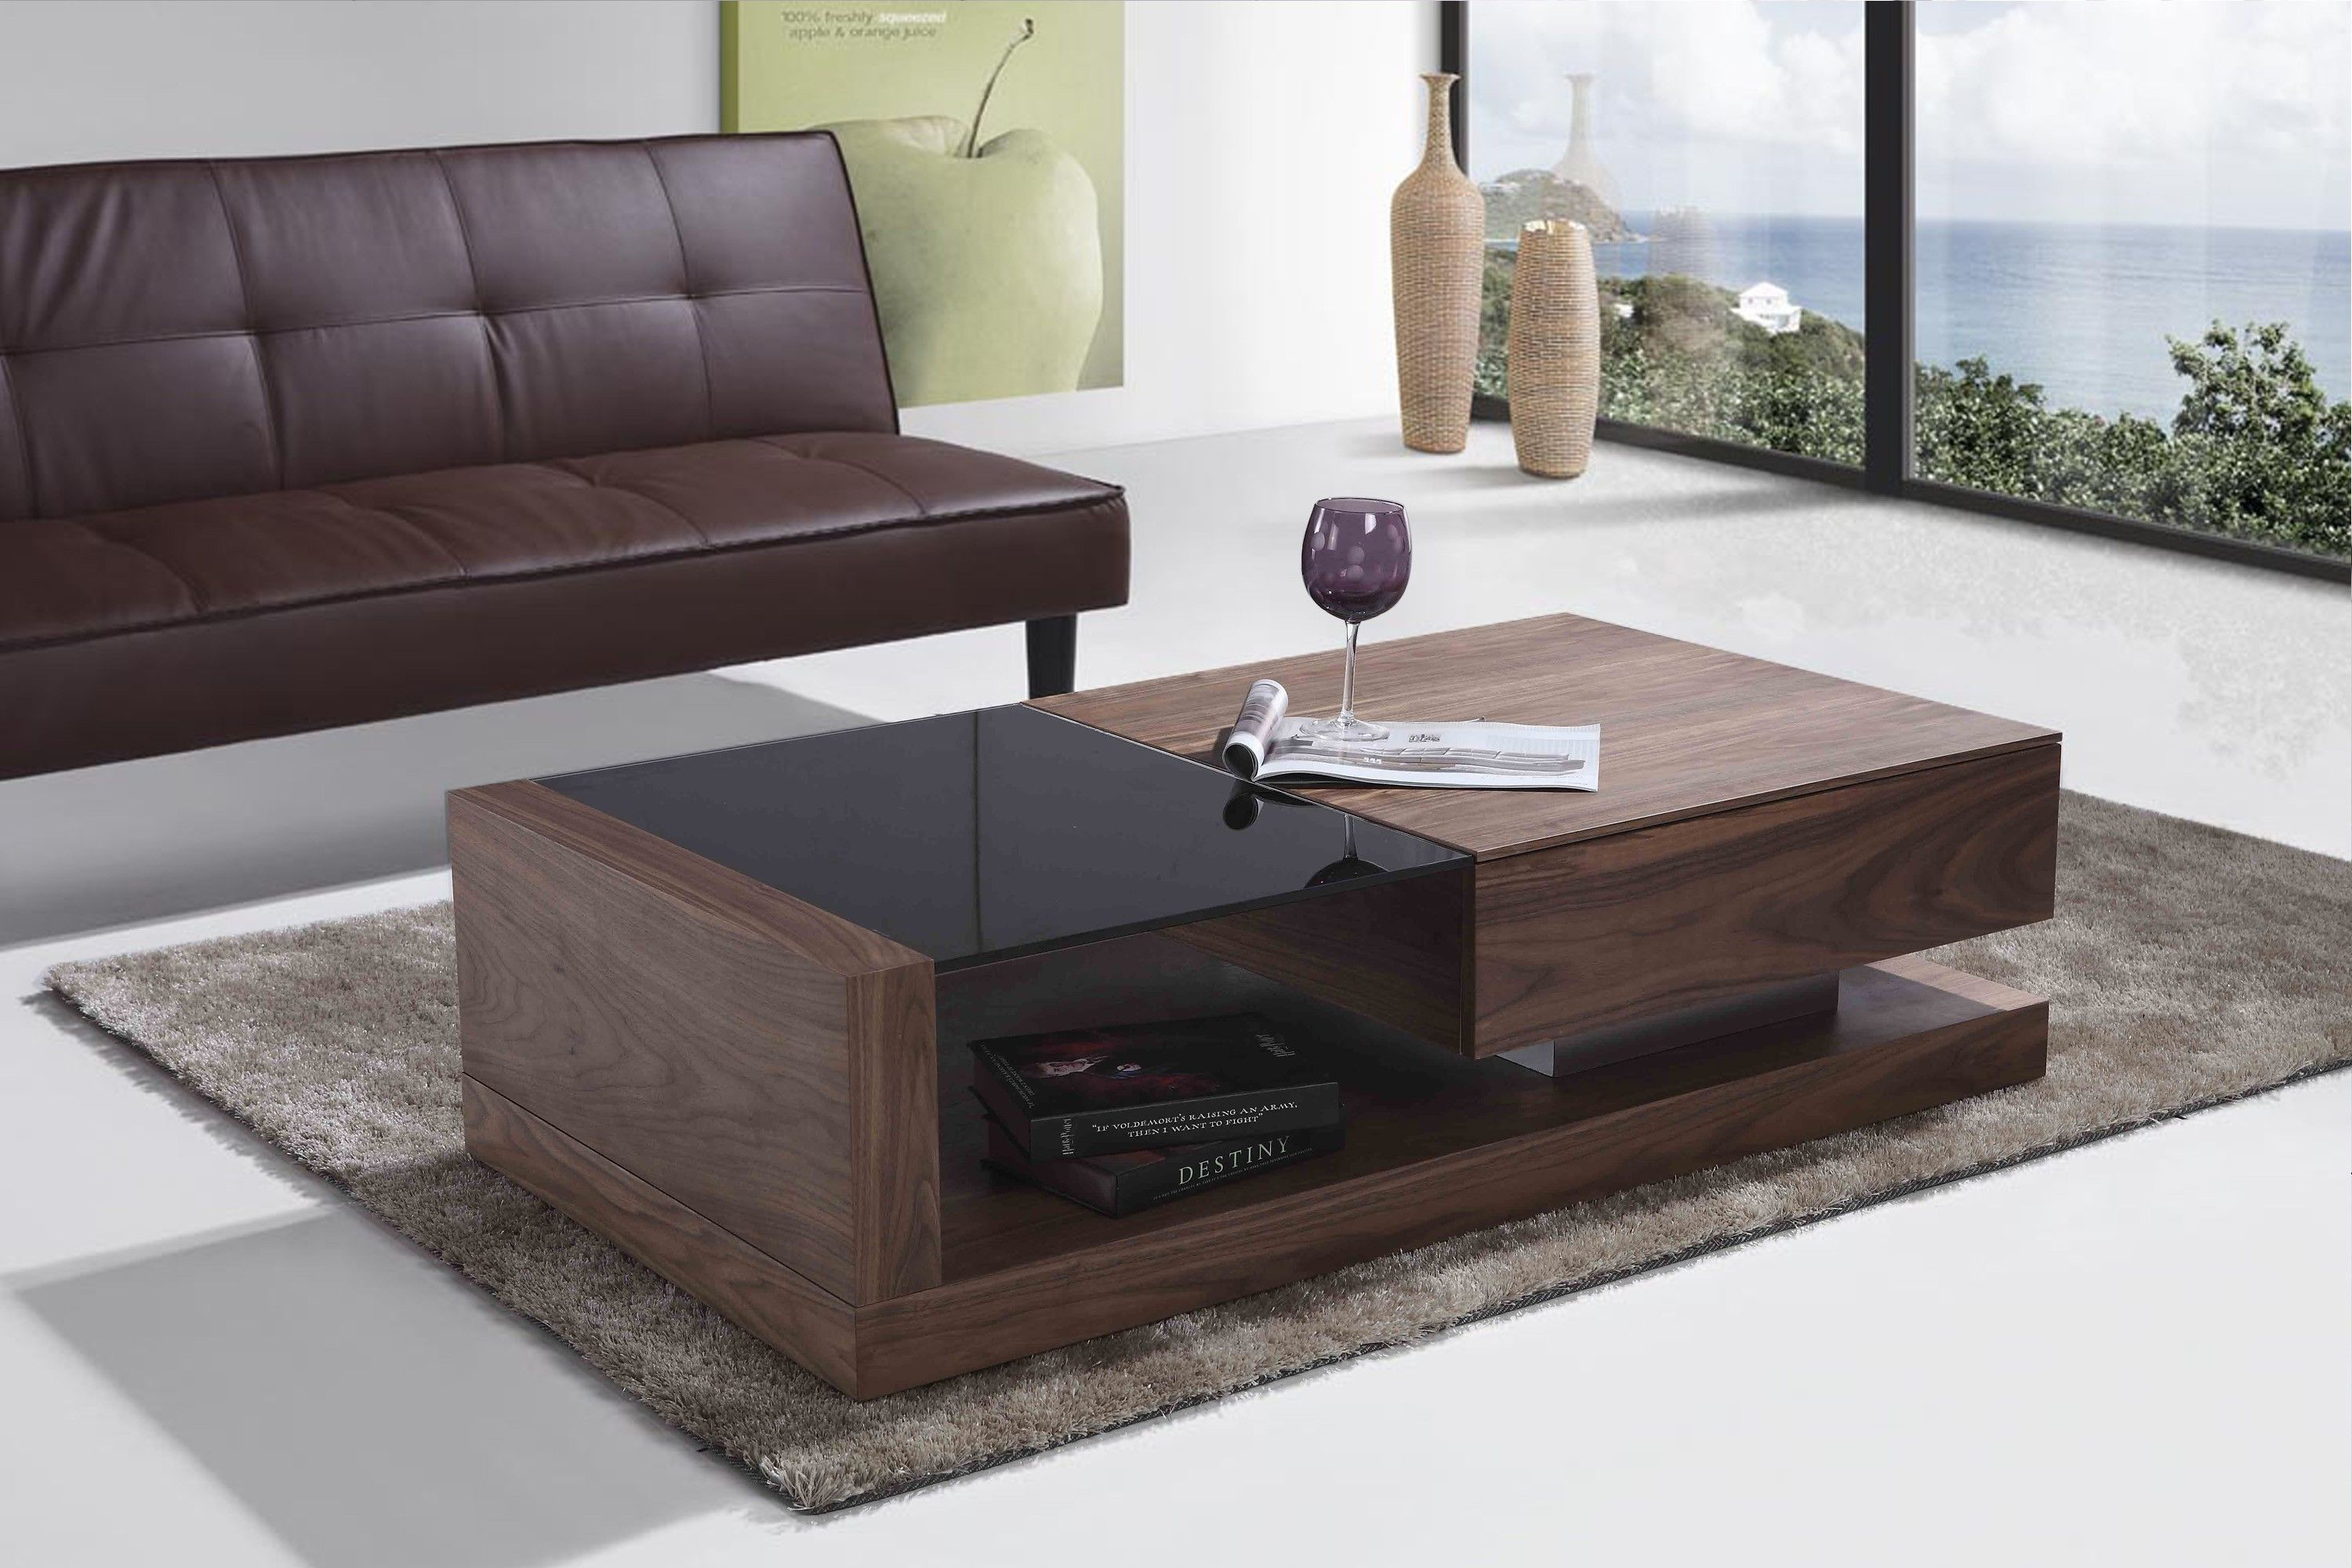 Merveilleux Sofa: Modern Sofa Table With Black Glass On Top Modern White Leather Sofa  Four White